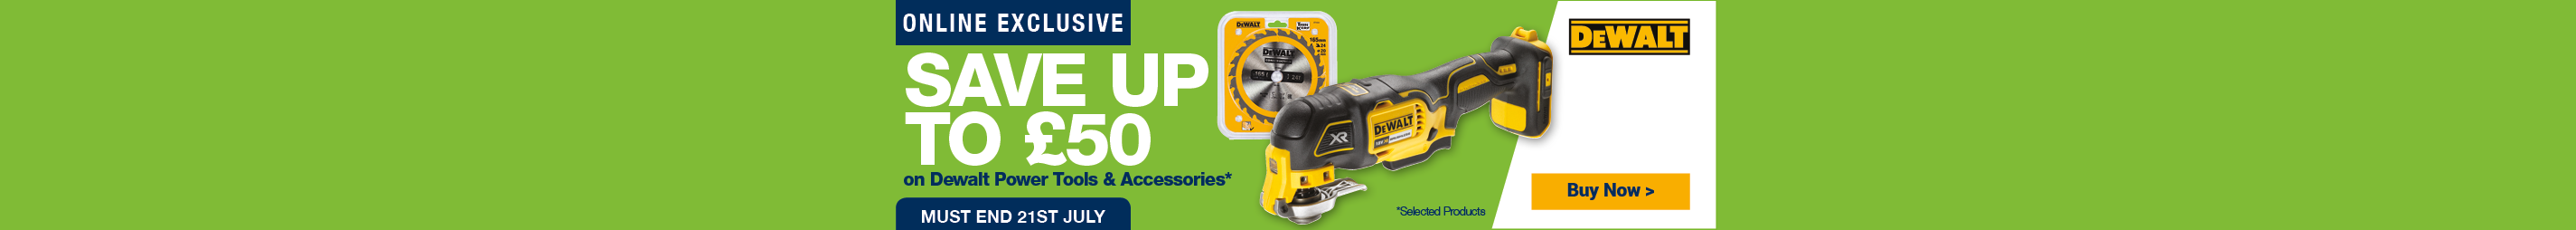 Dewalt Tools Deals